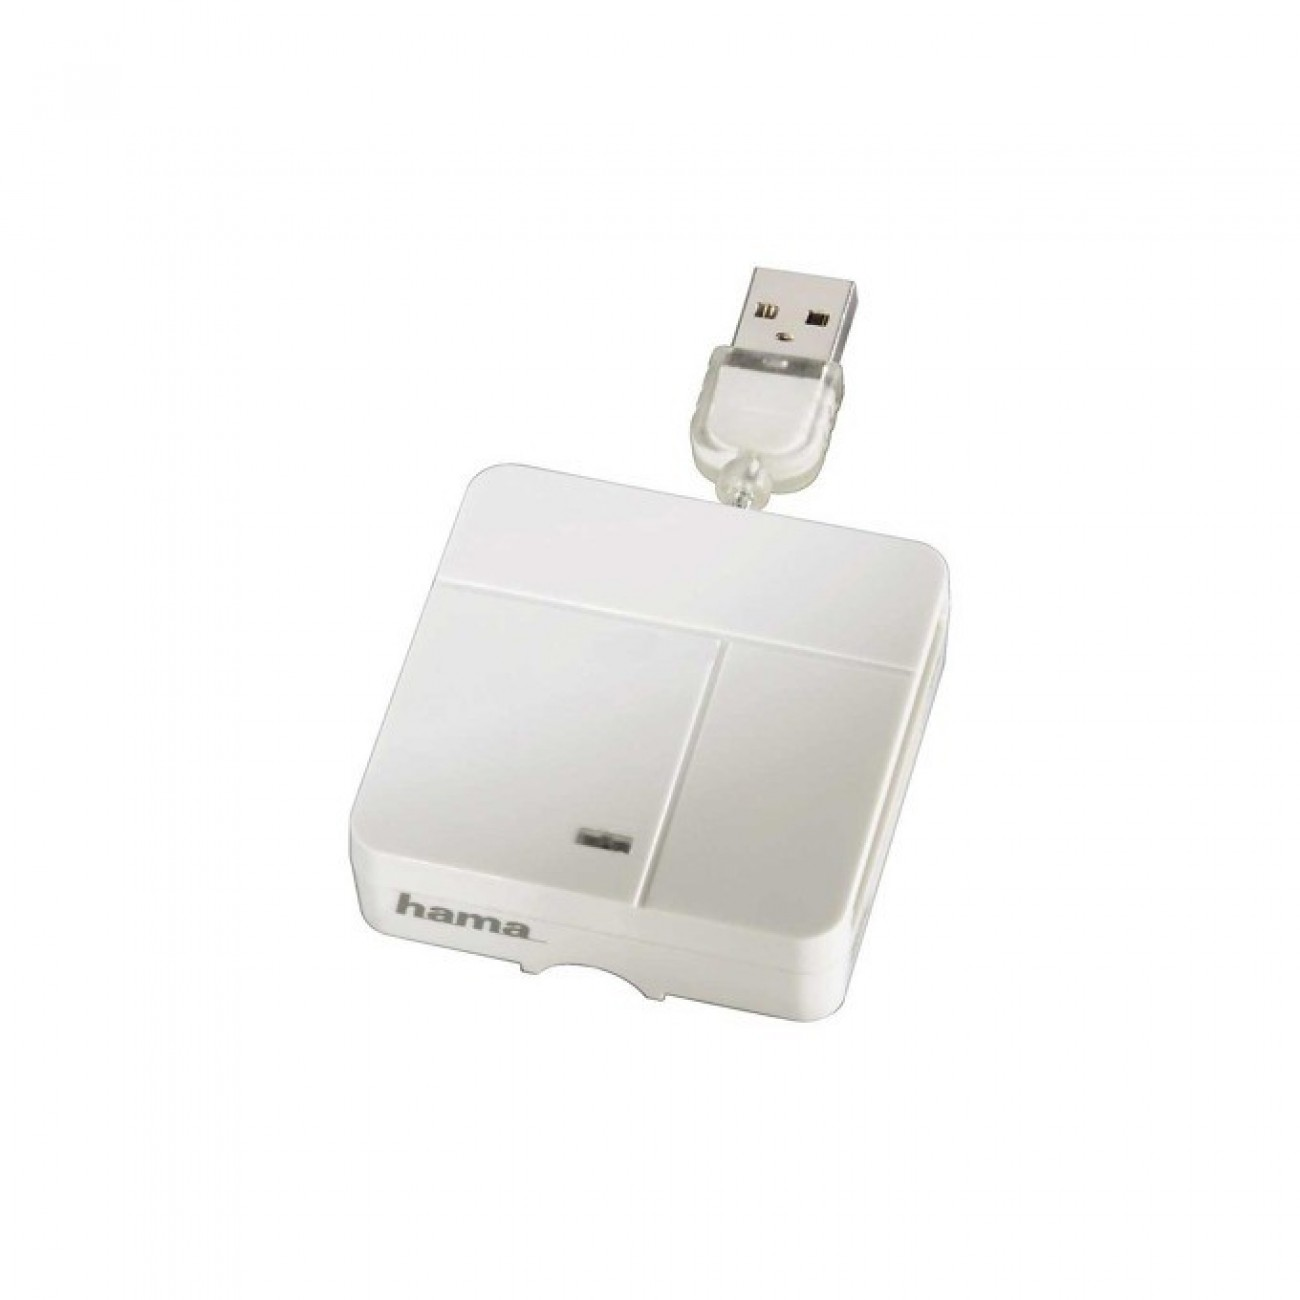 Card Reader HAMA All in One (94125), USB, бял в Четци за карти -  | Alleop